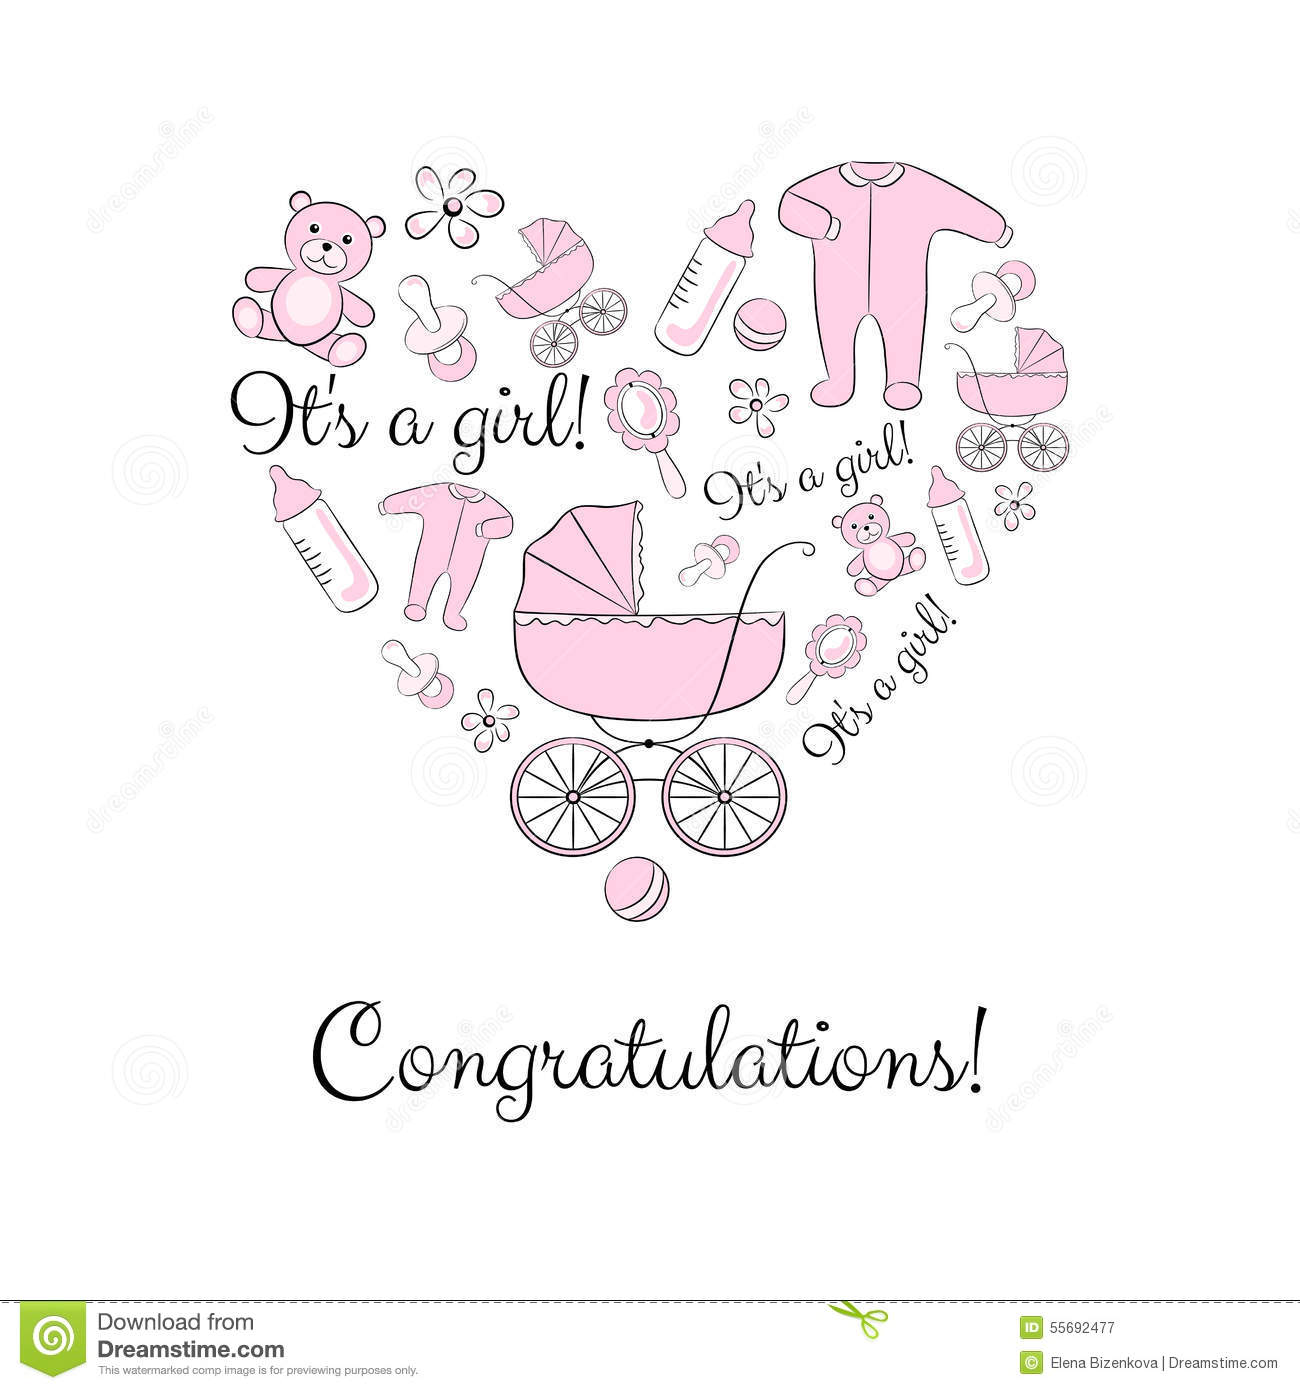 Congratulations On New Baby Girl Quotes: Congratulation Quotes For Baby Shower